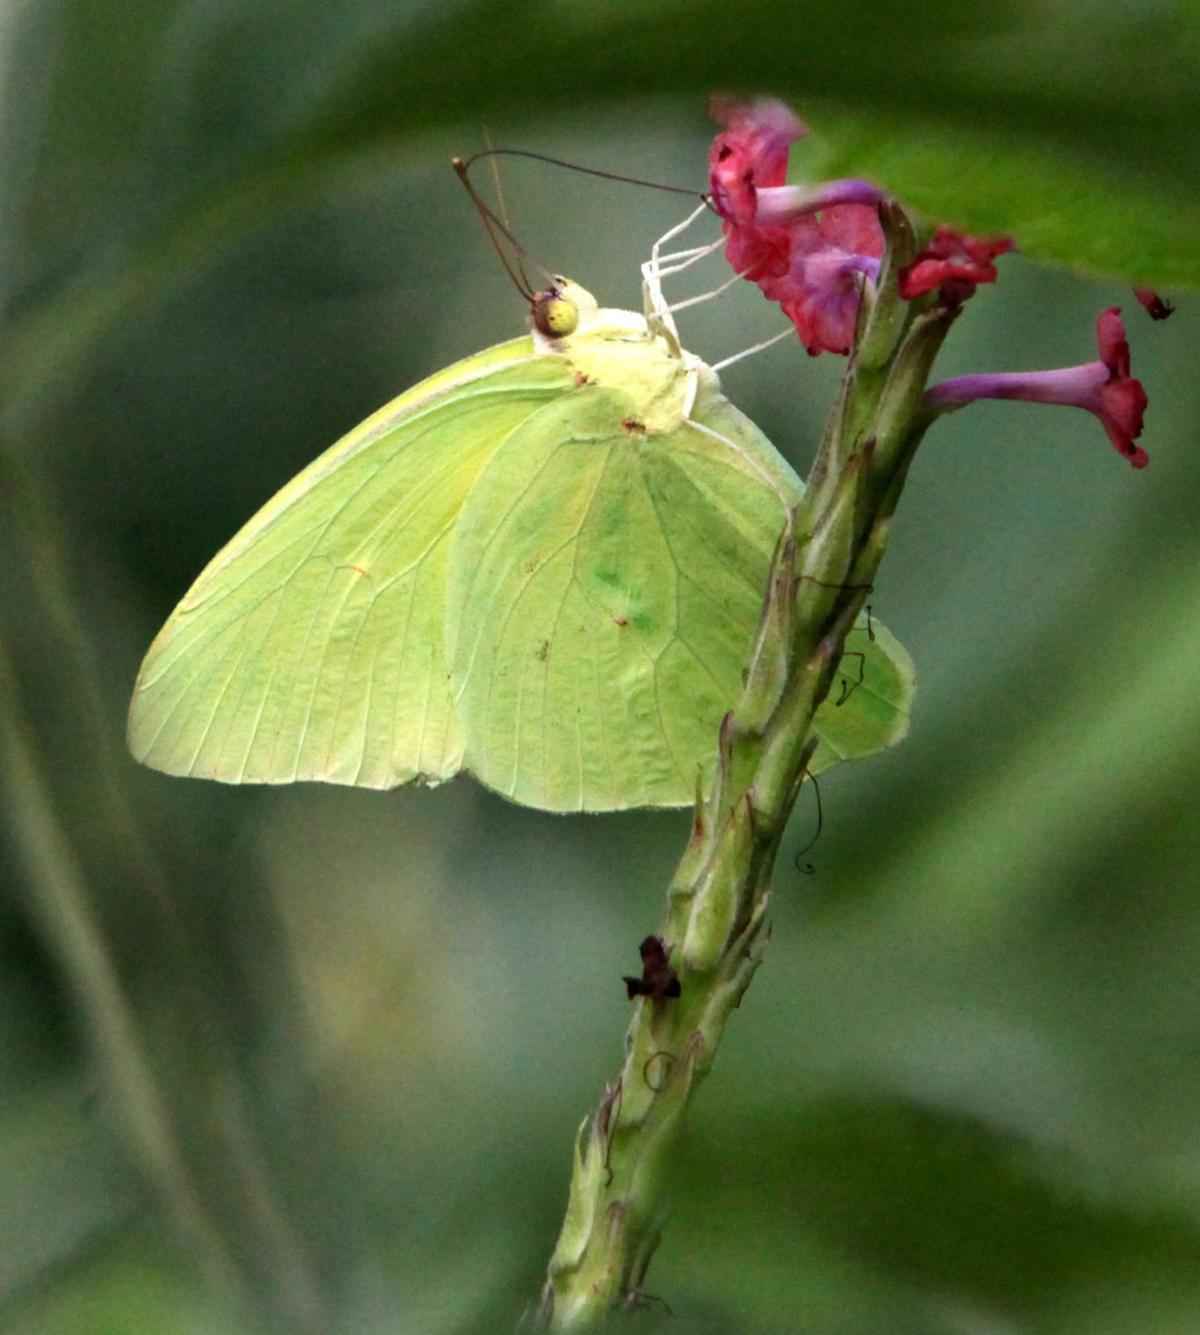 Nature Gardens @ NHM: L.A.'s Urban Nature: First Clouded ... |Clouded Sulphur Butterfly